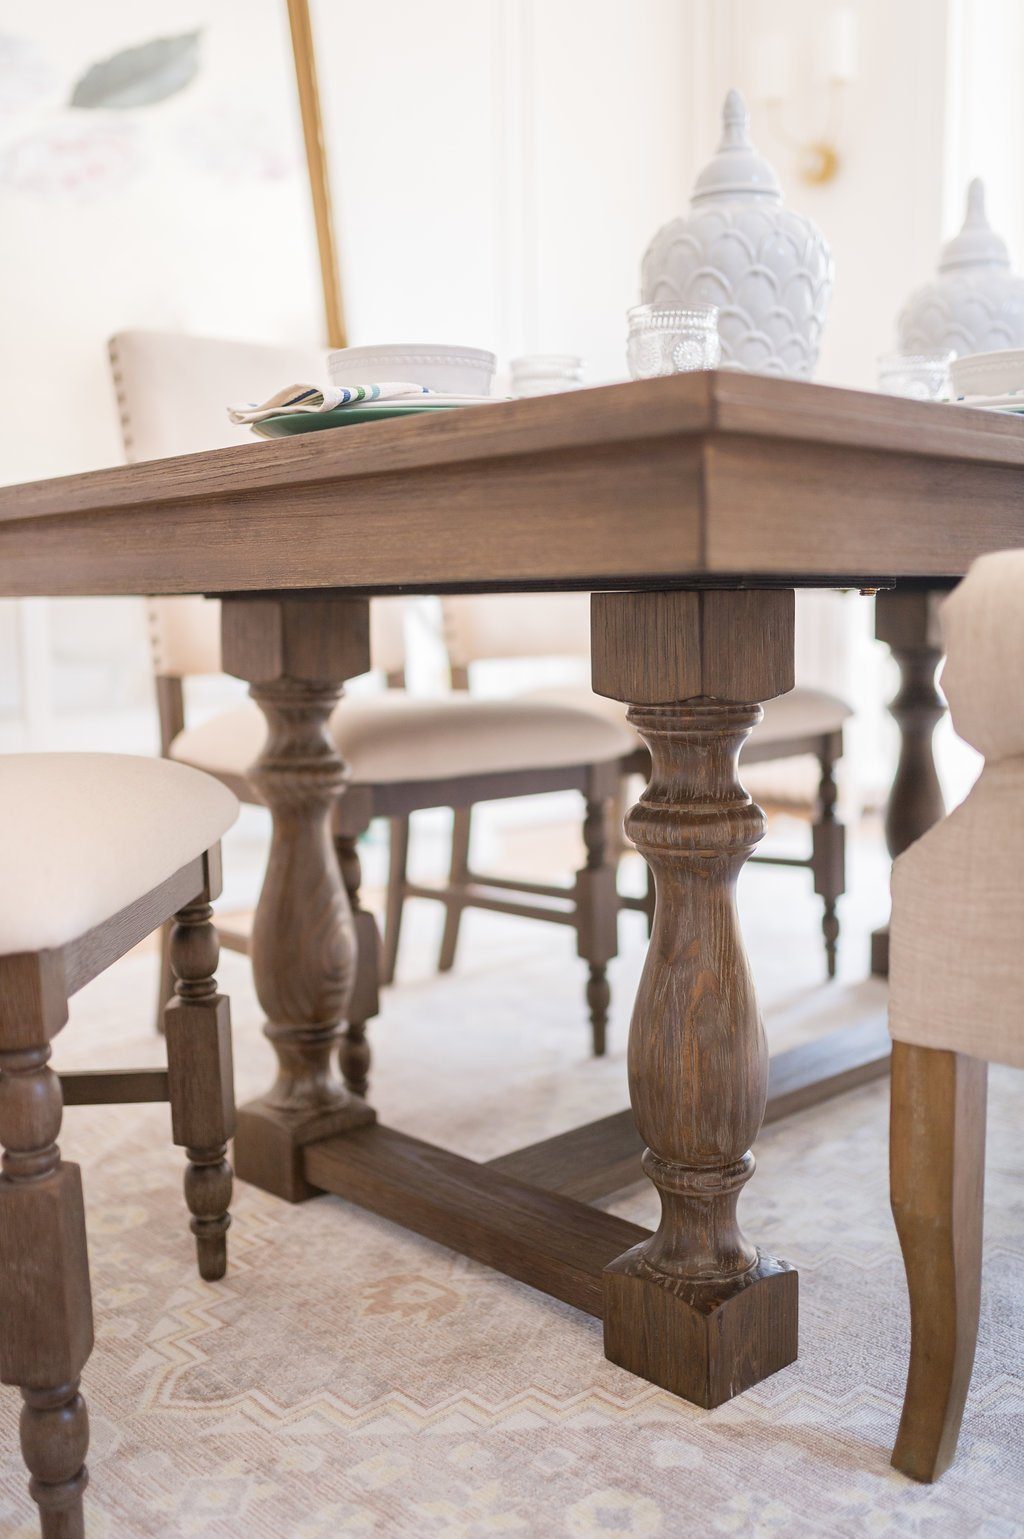 The Brick On Twitter The Meticulously Milled Legs Of The Aspen Dining Table Show Off The Skillful Craftsmanship That Went Into The Table S Construction Shop Online Today Https T Co Dutylektmu The Leslie Style